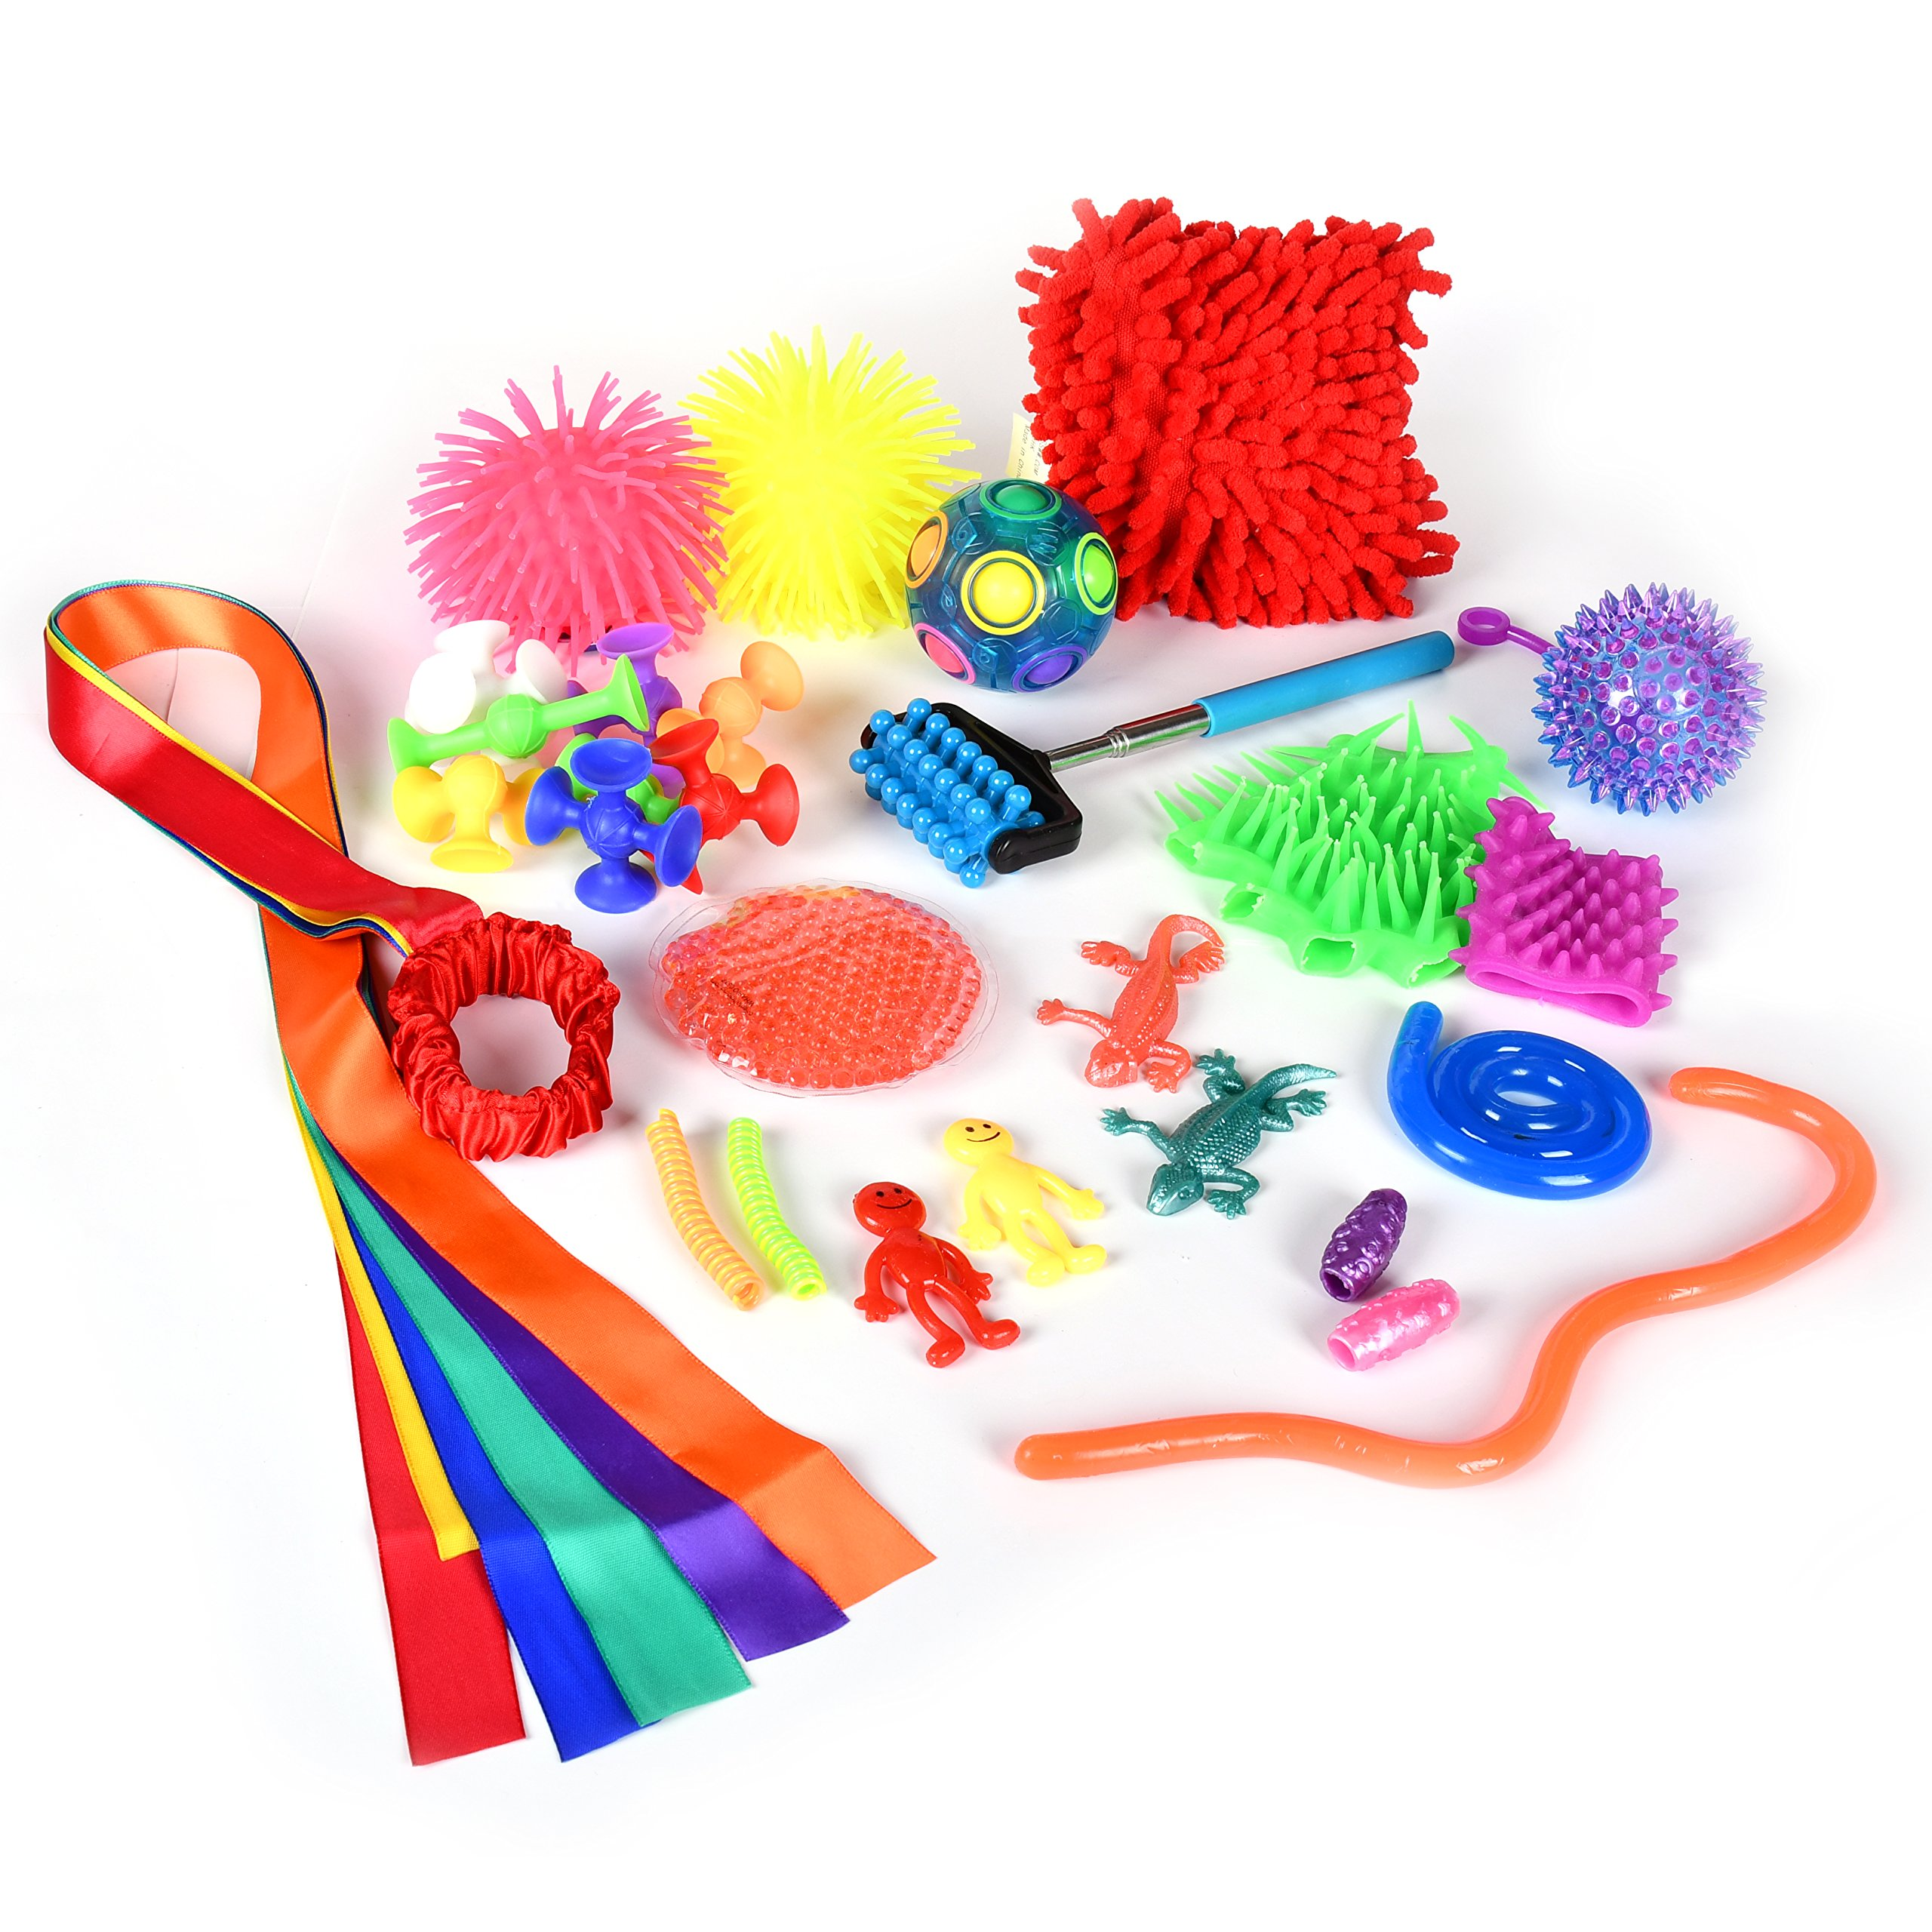 Toys for autistic adults, teen lina hardcorepor